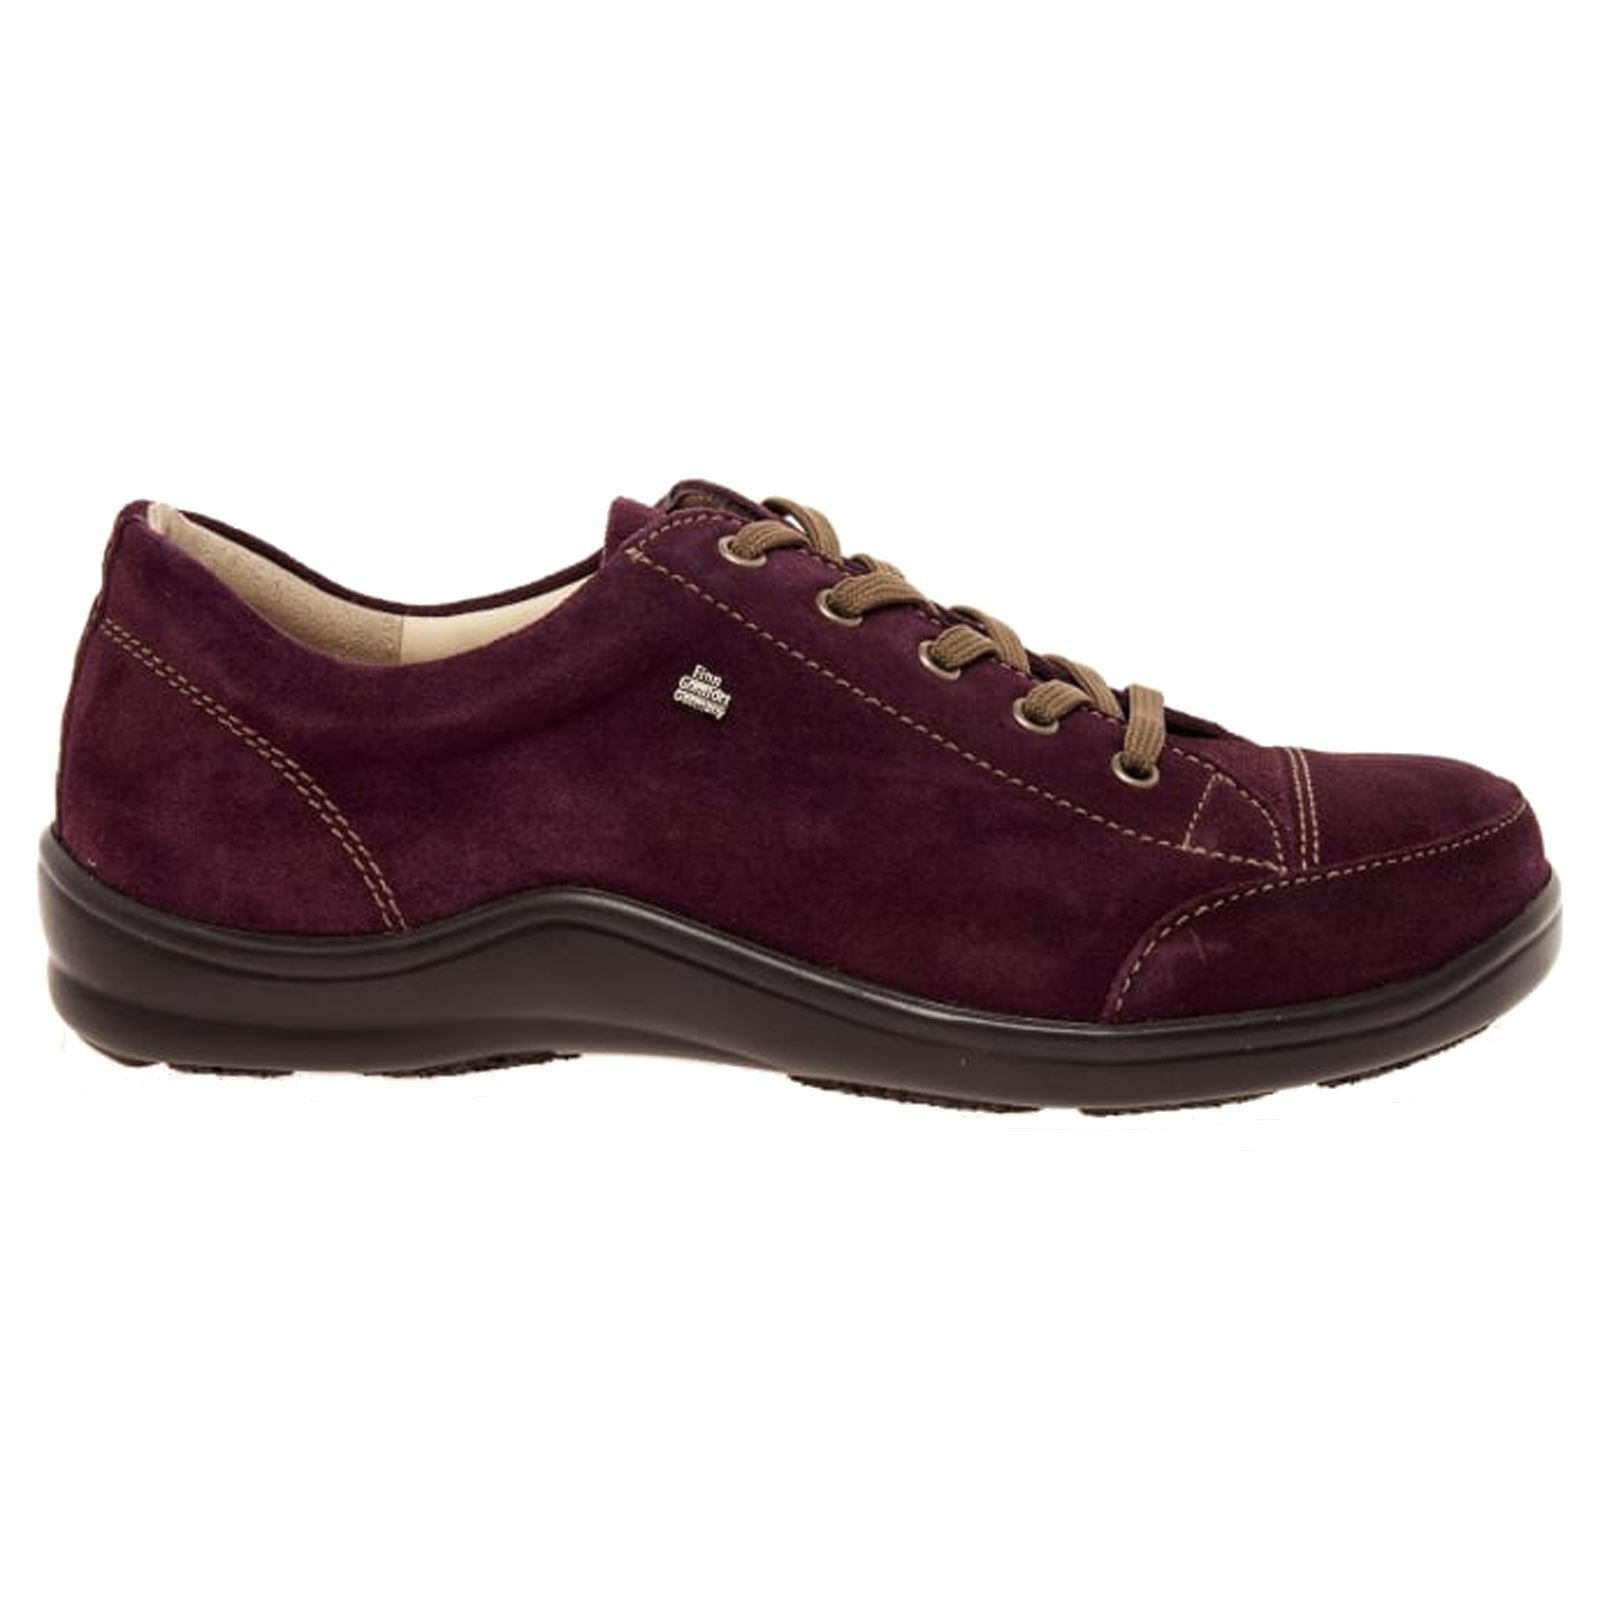 Finn Comfort Women's Soho Vino Velour Sneaker 39 (US Women's 8.5-9) Medium